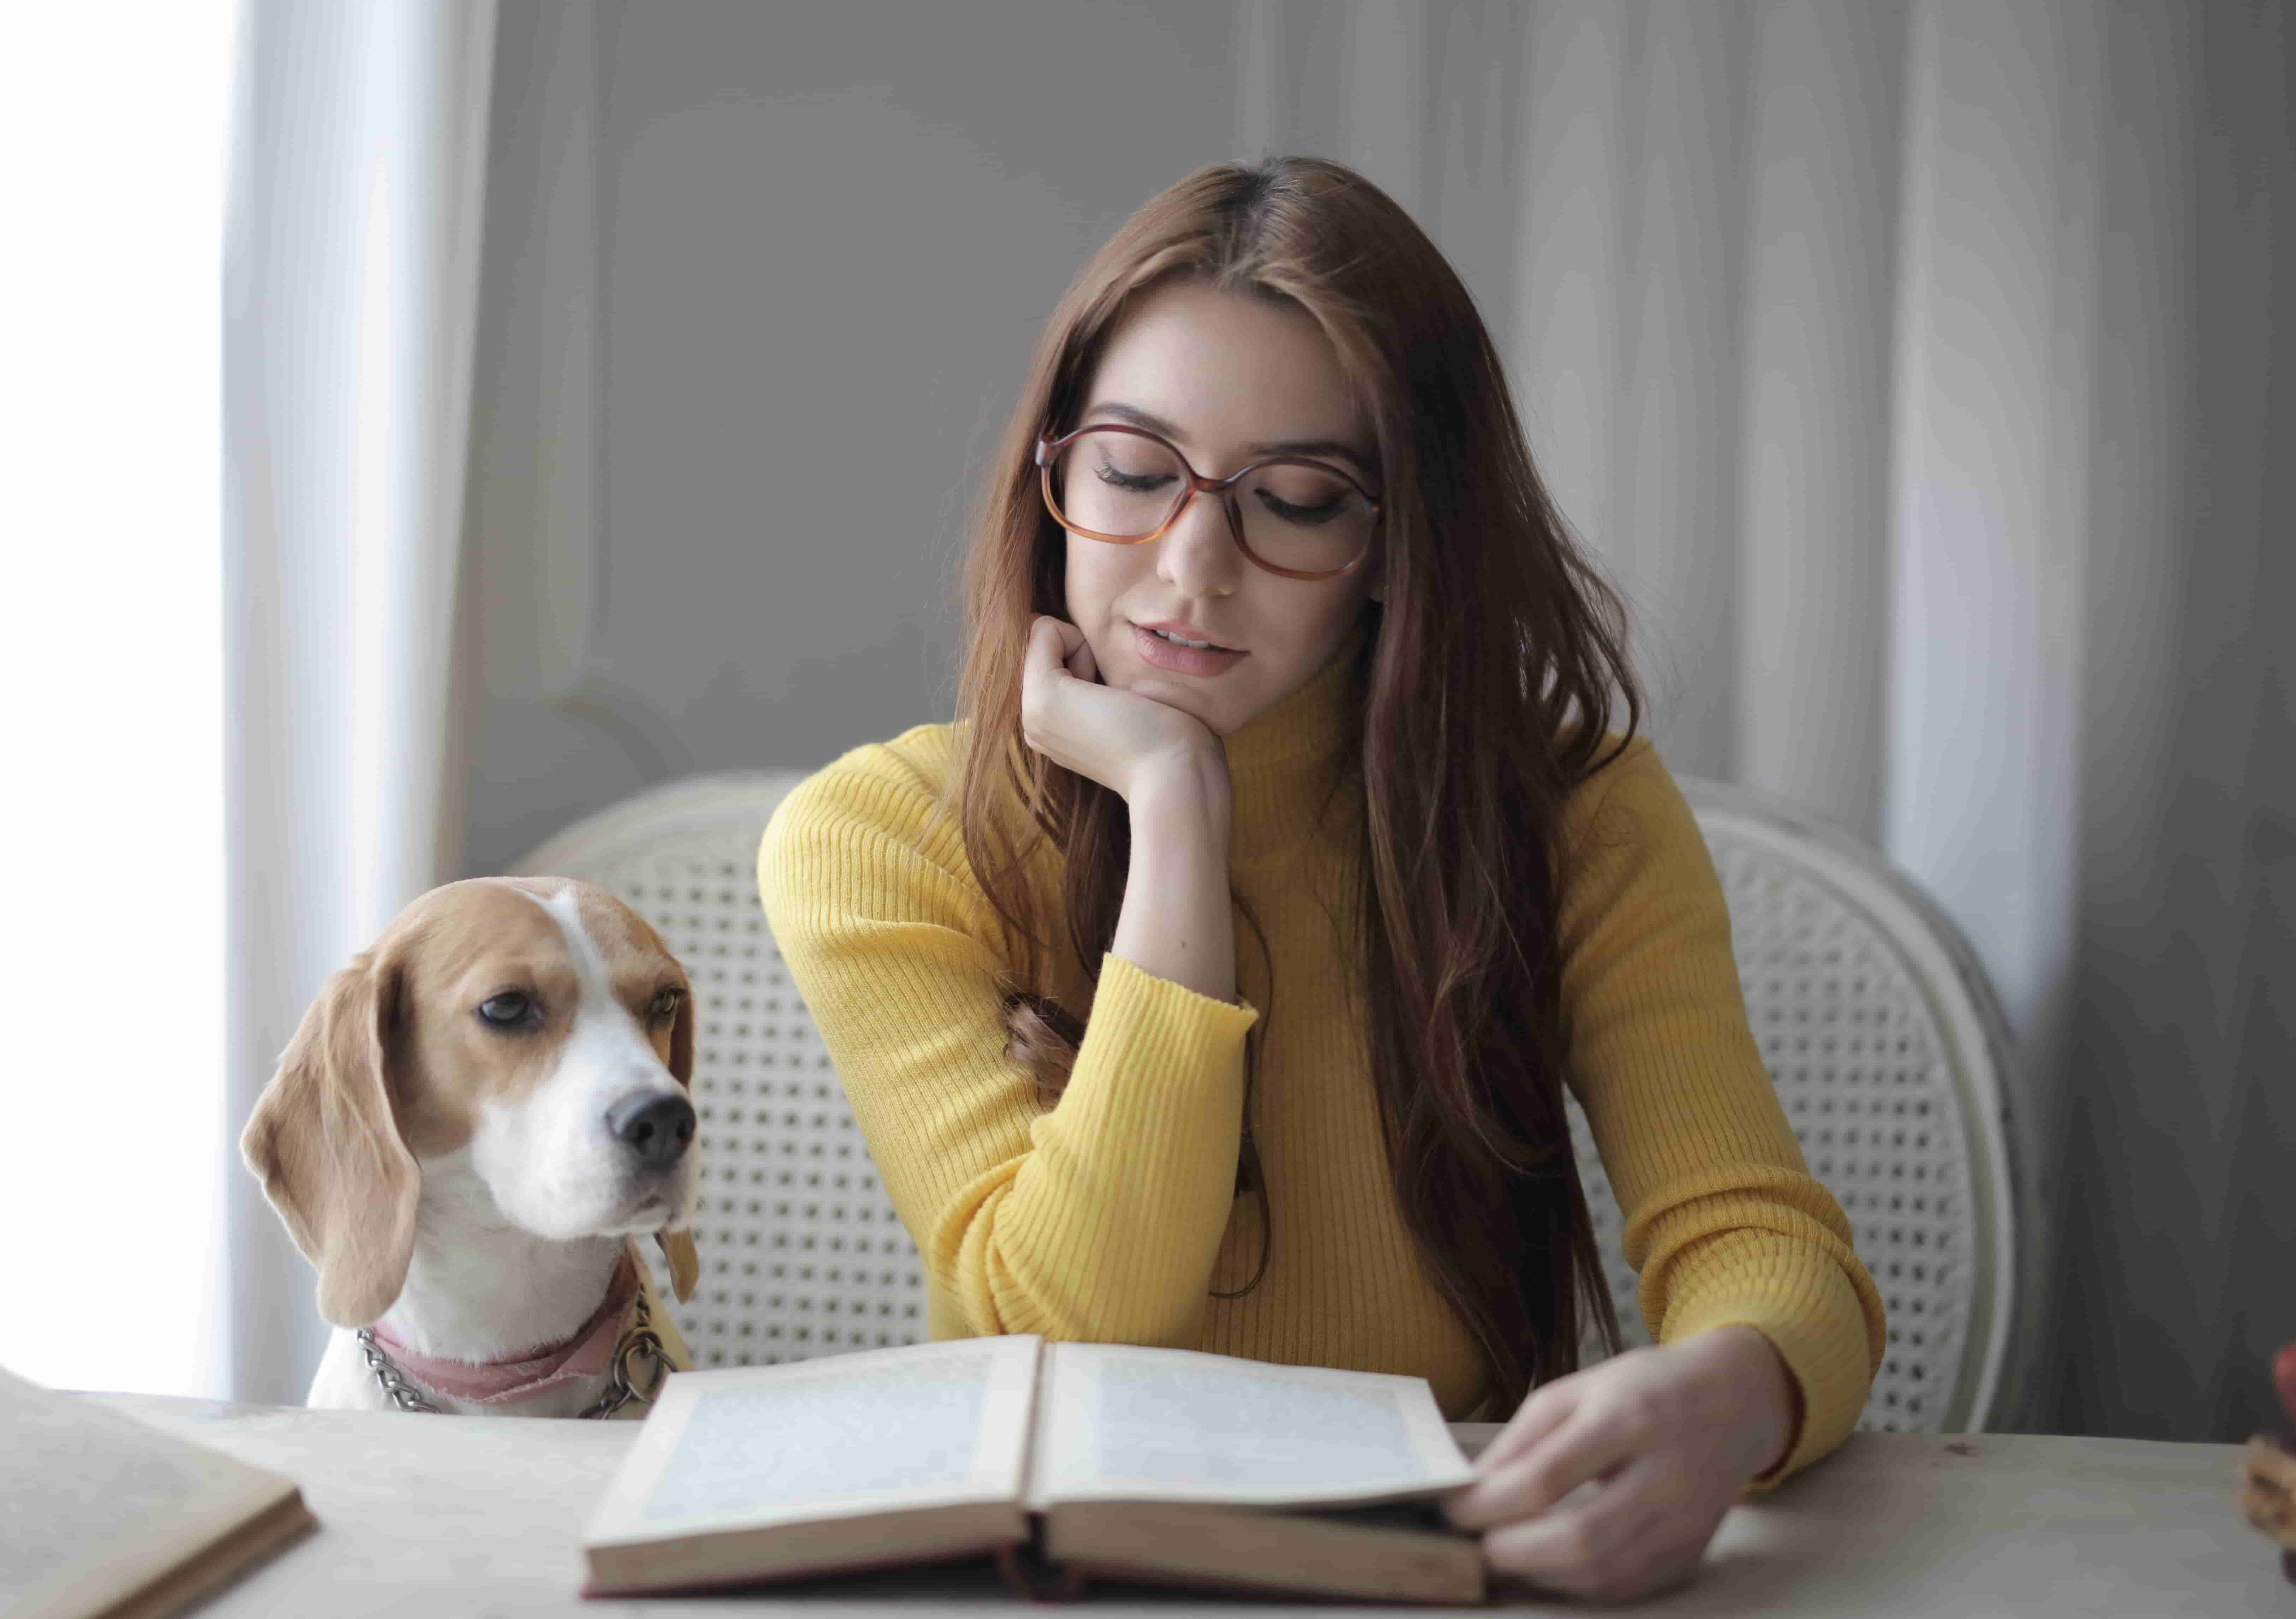 Girl with prescription glasses is reading a book